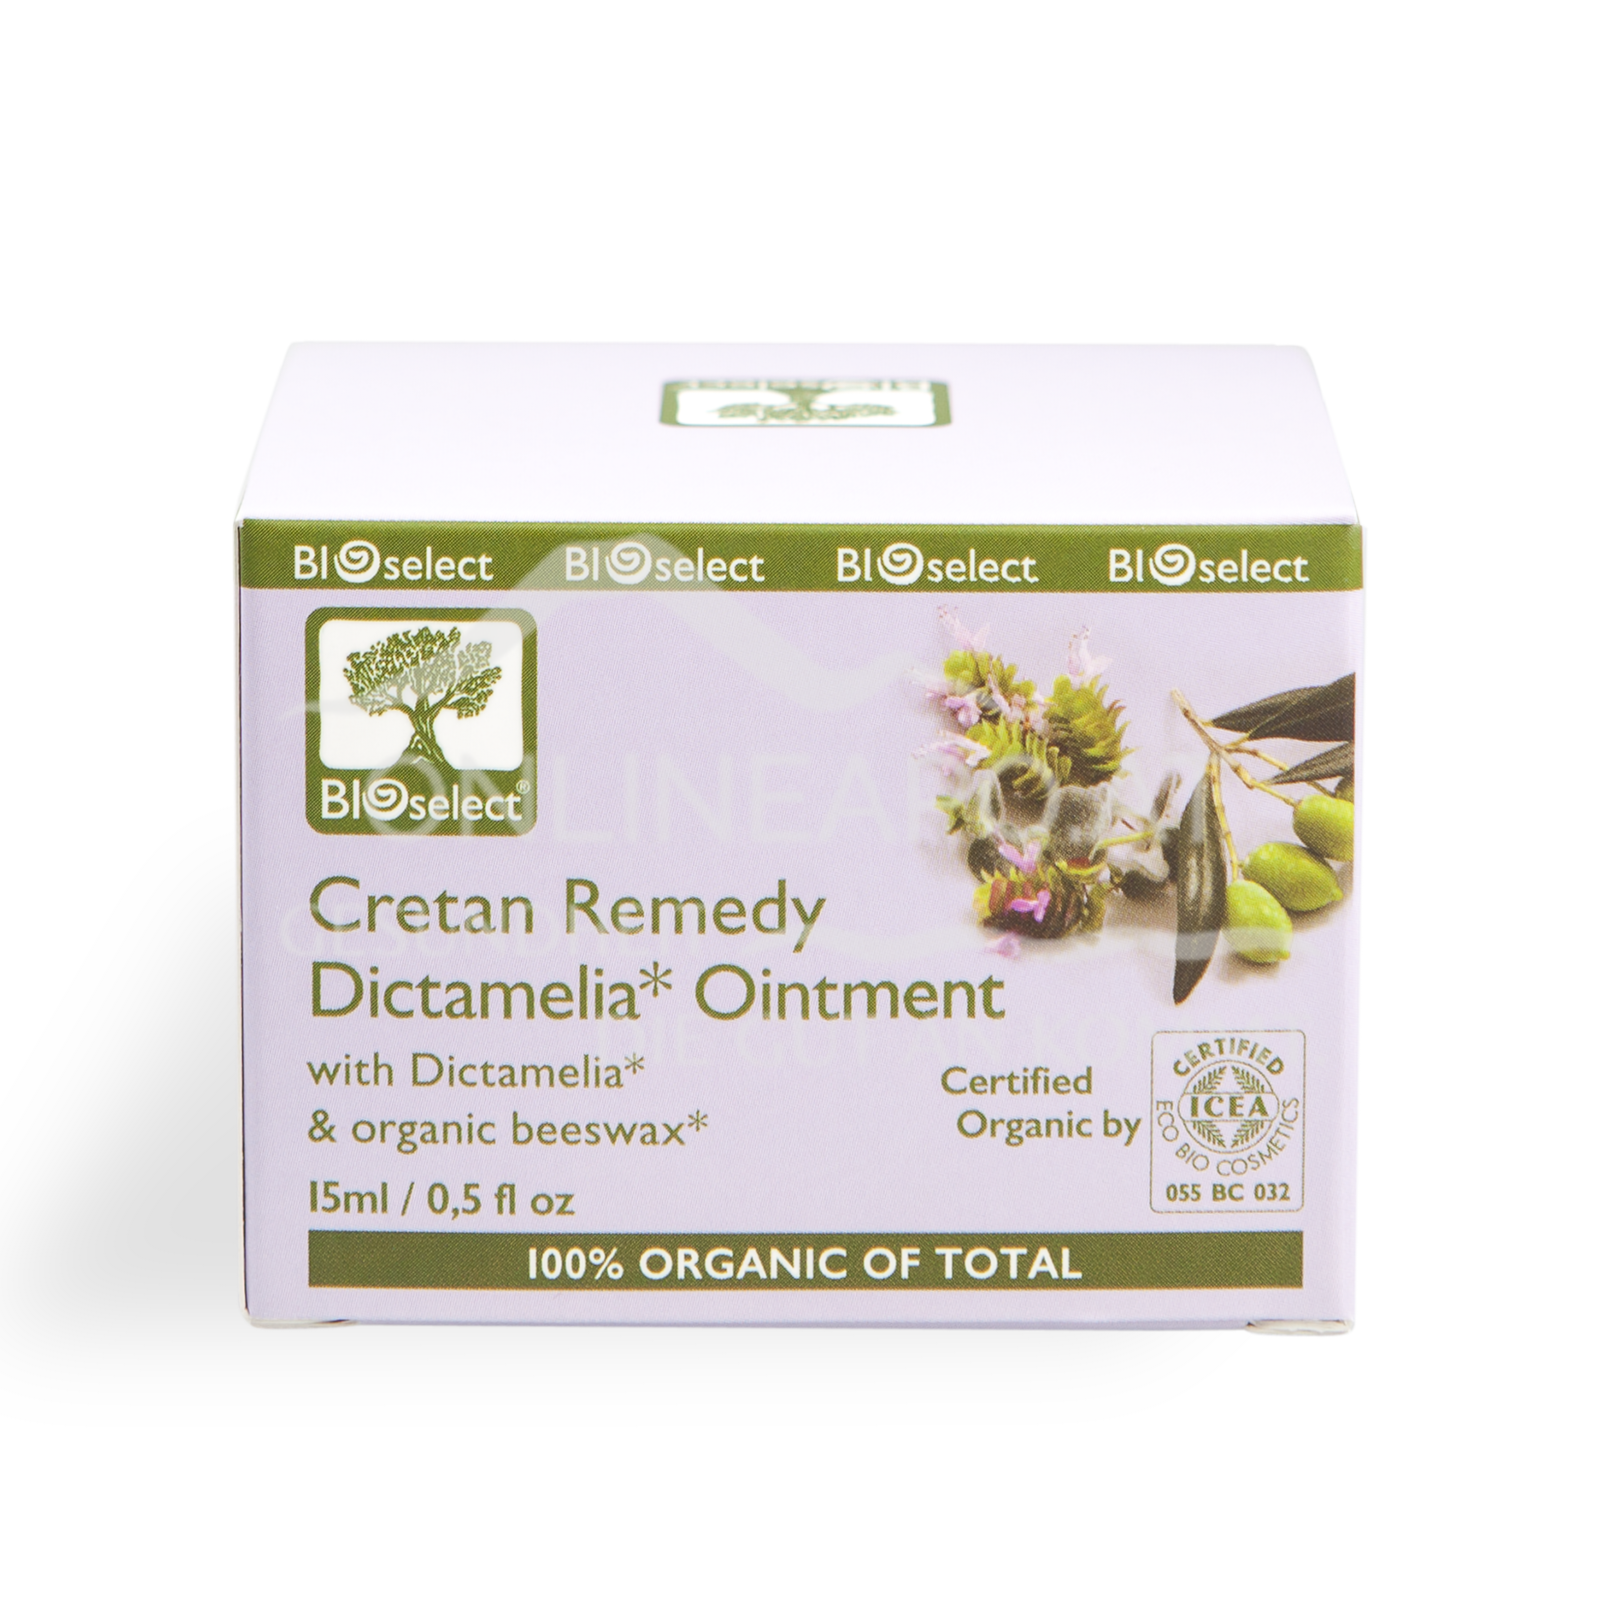 Bioselect Cretan remedy Dictamelia® Ointment